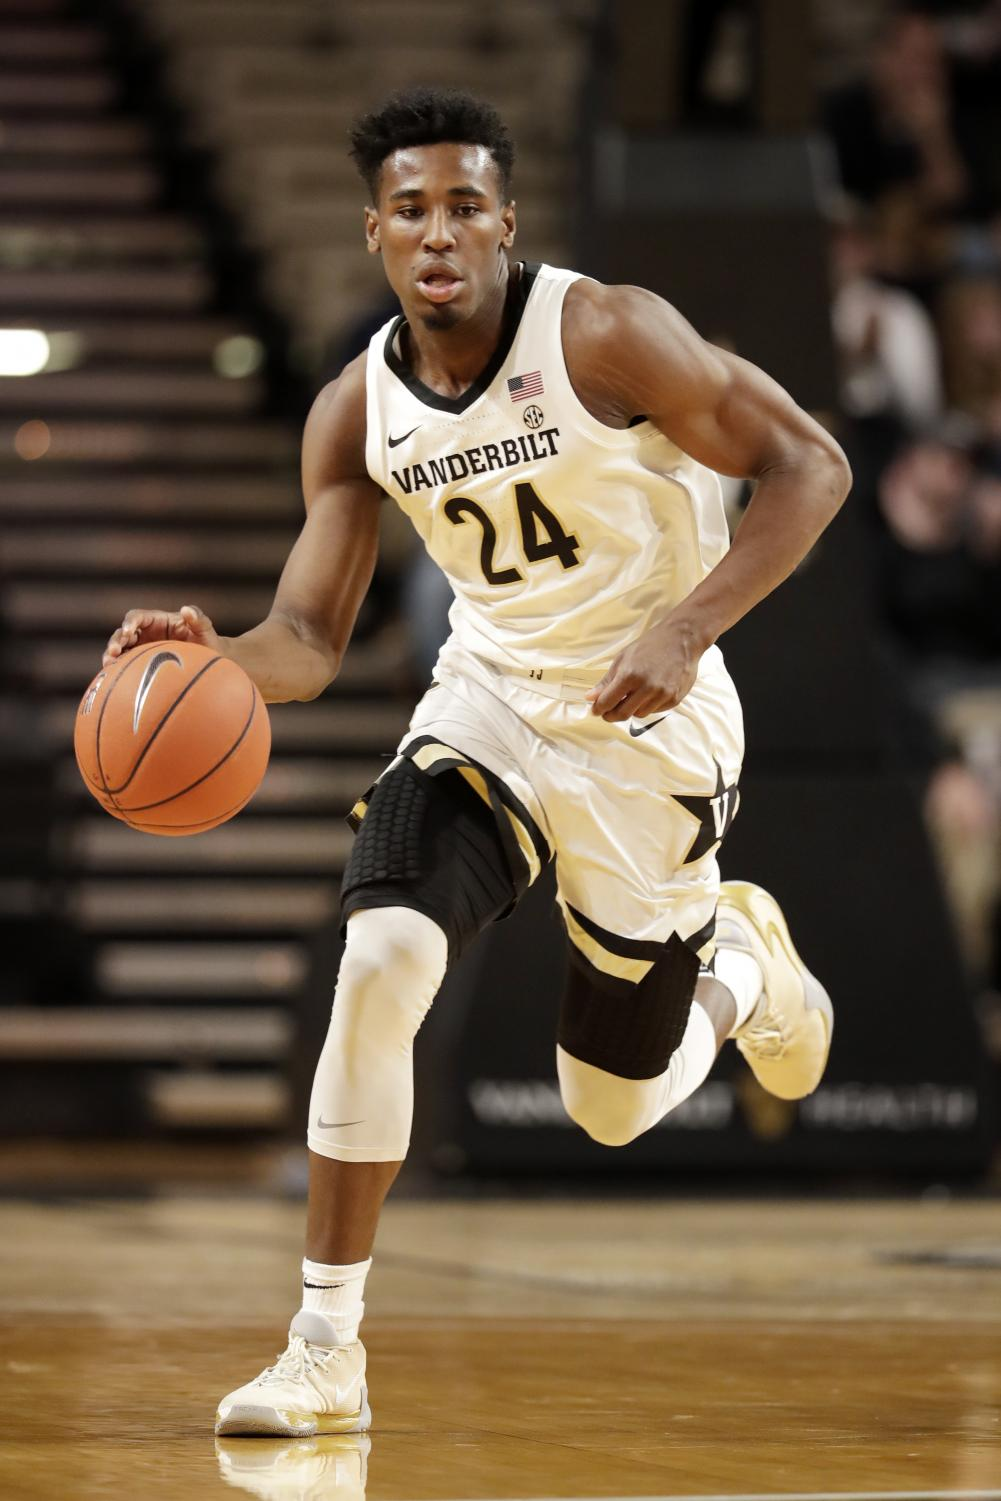 Vanderbilt+forward+Aaron+Nesmith+plays+against+Southeast+Missouri+State+in+the+first+half+of+an+NCAA+college+basketball+game+Wednesday%2C+Nov.+6%2C+2019%2C+in+Nashville%2C+Tenn.+Nesmith+led+Vanderbilt+with+25+points+as+Vanderbilt+won+83-65.+%28AP+Photo%2FMark+Humphrey%29